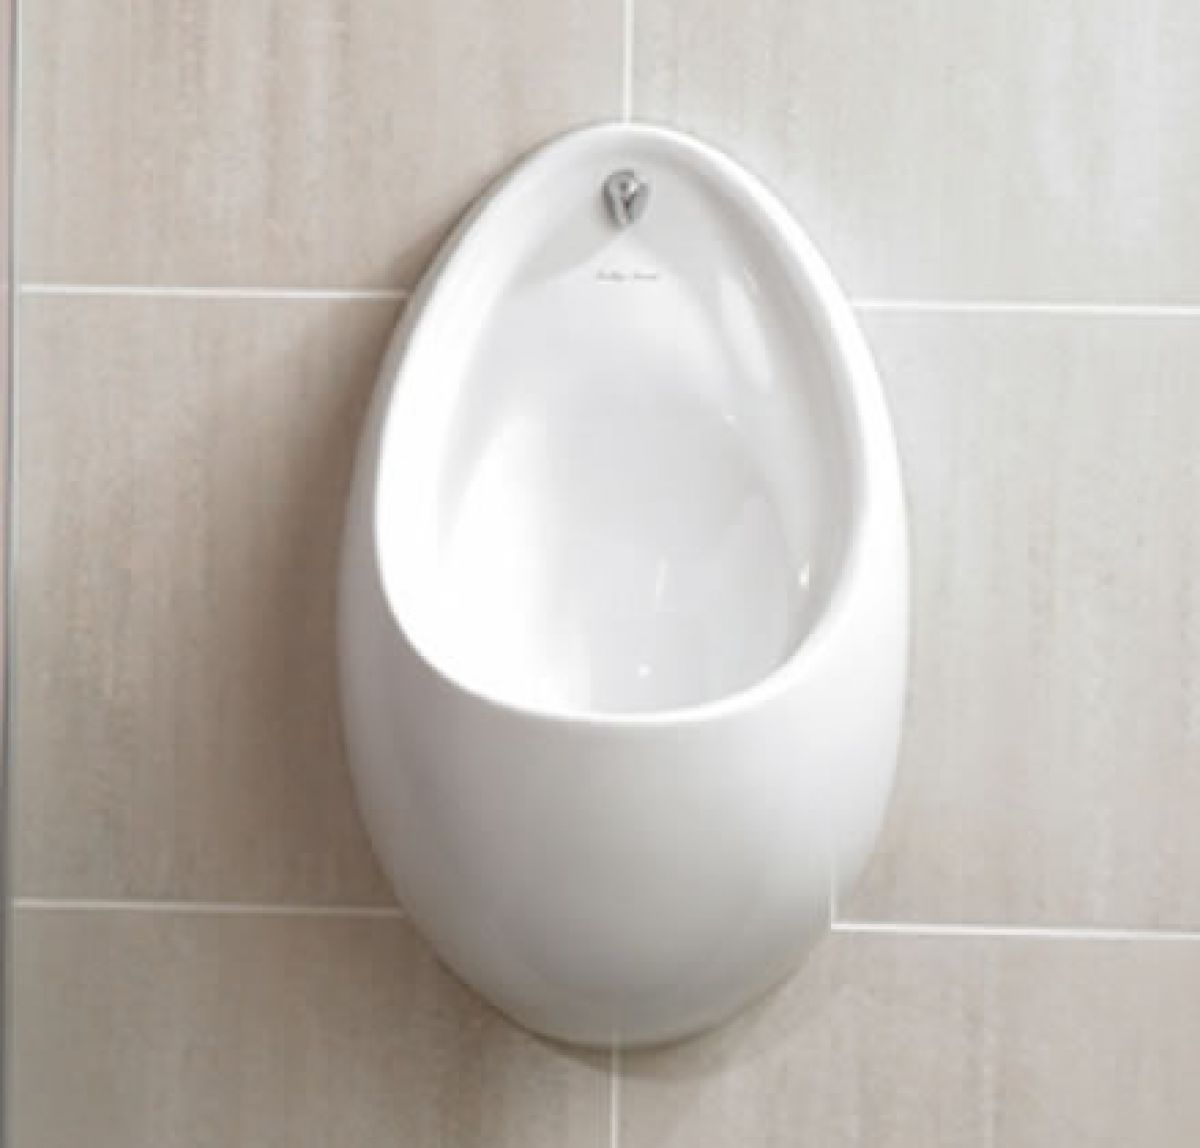 Armitage Shanks Contour 21 Concealed Trap Urinal